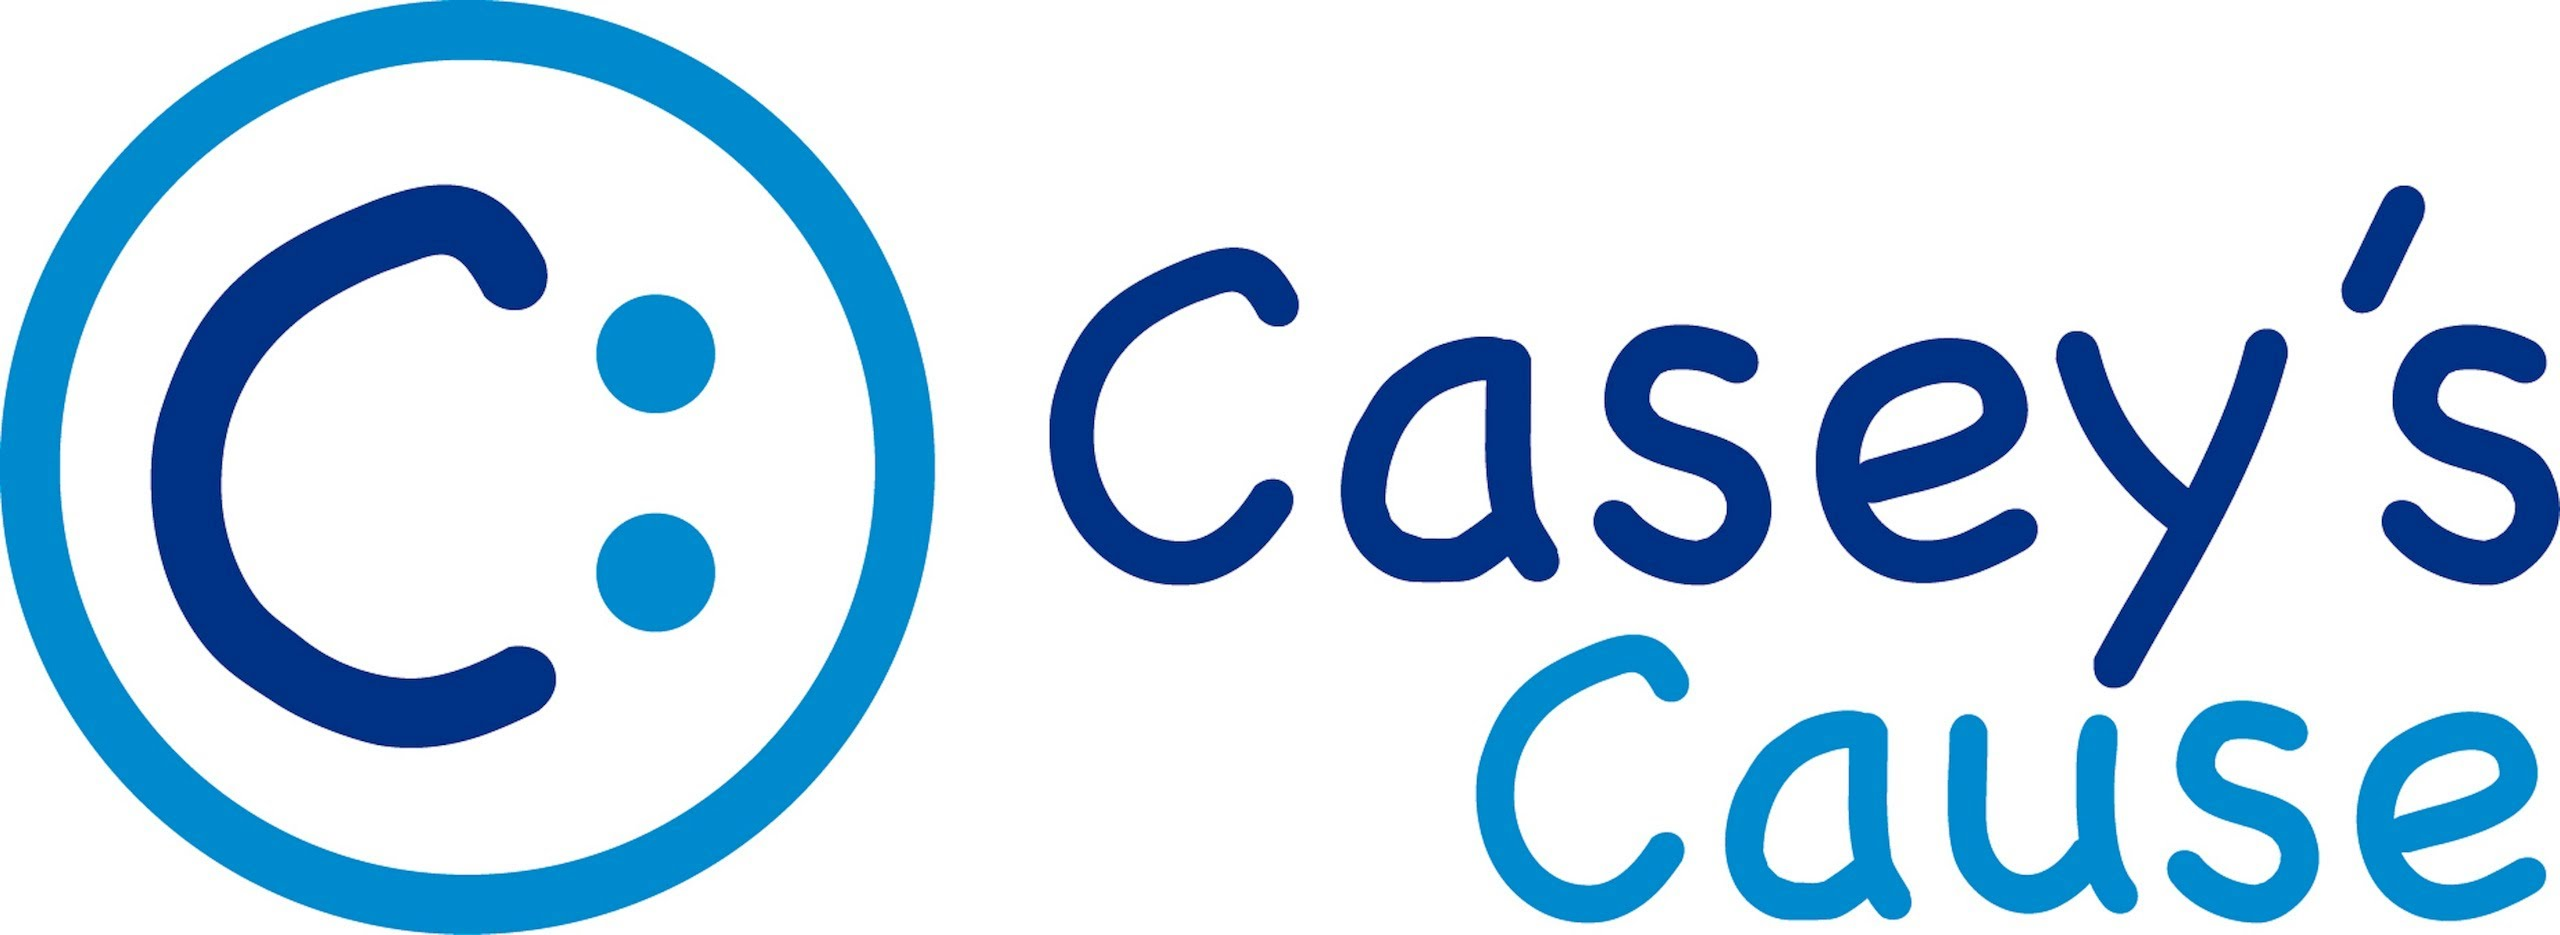 Education Supply Pool Proud To Support 'Casey's Cause'